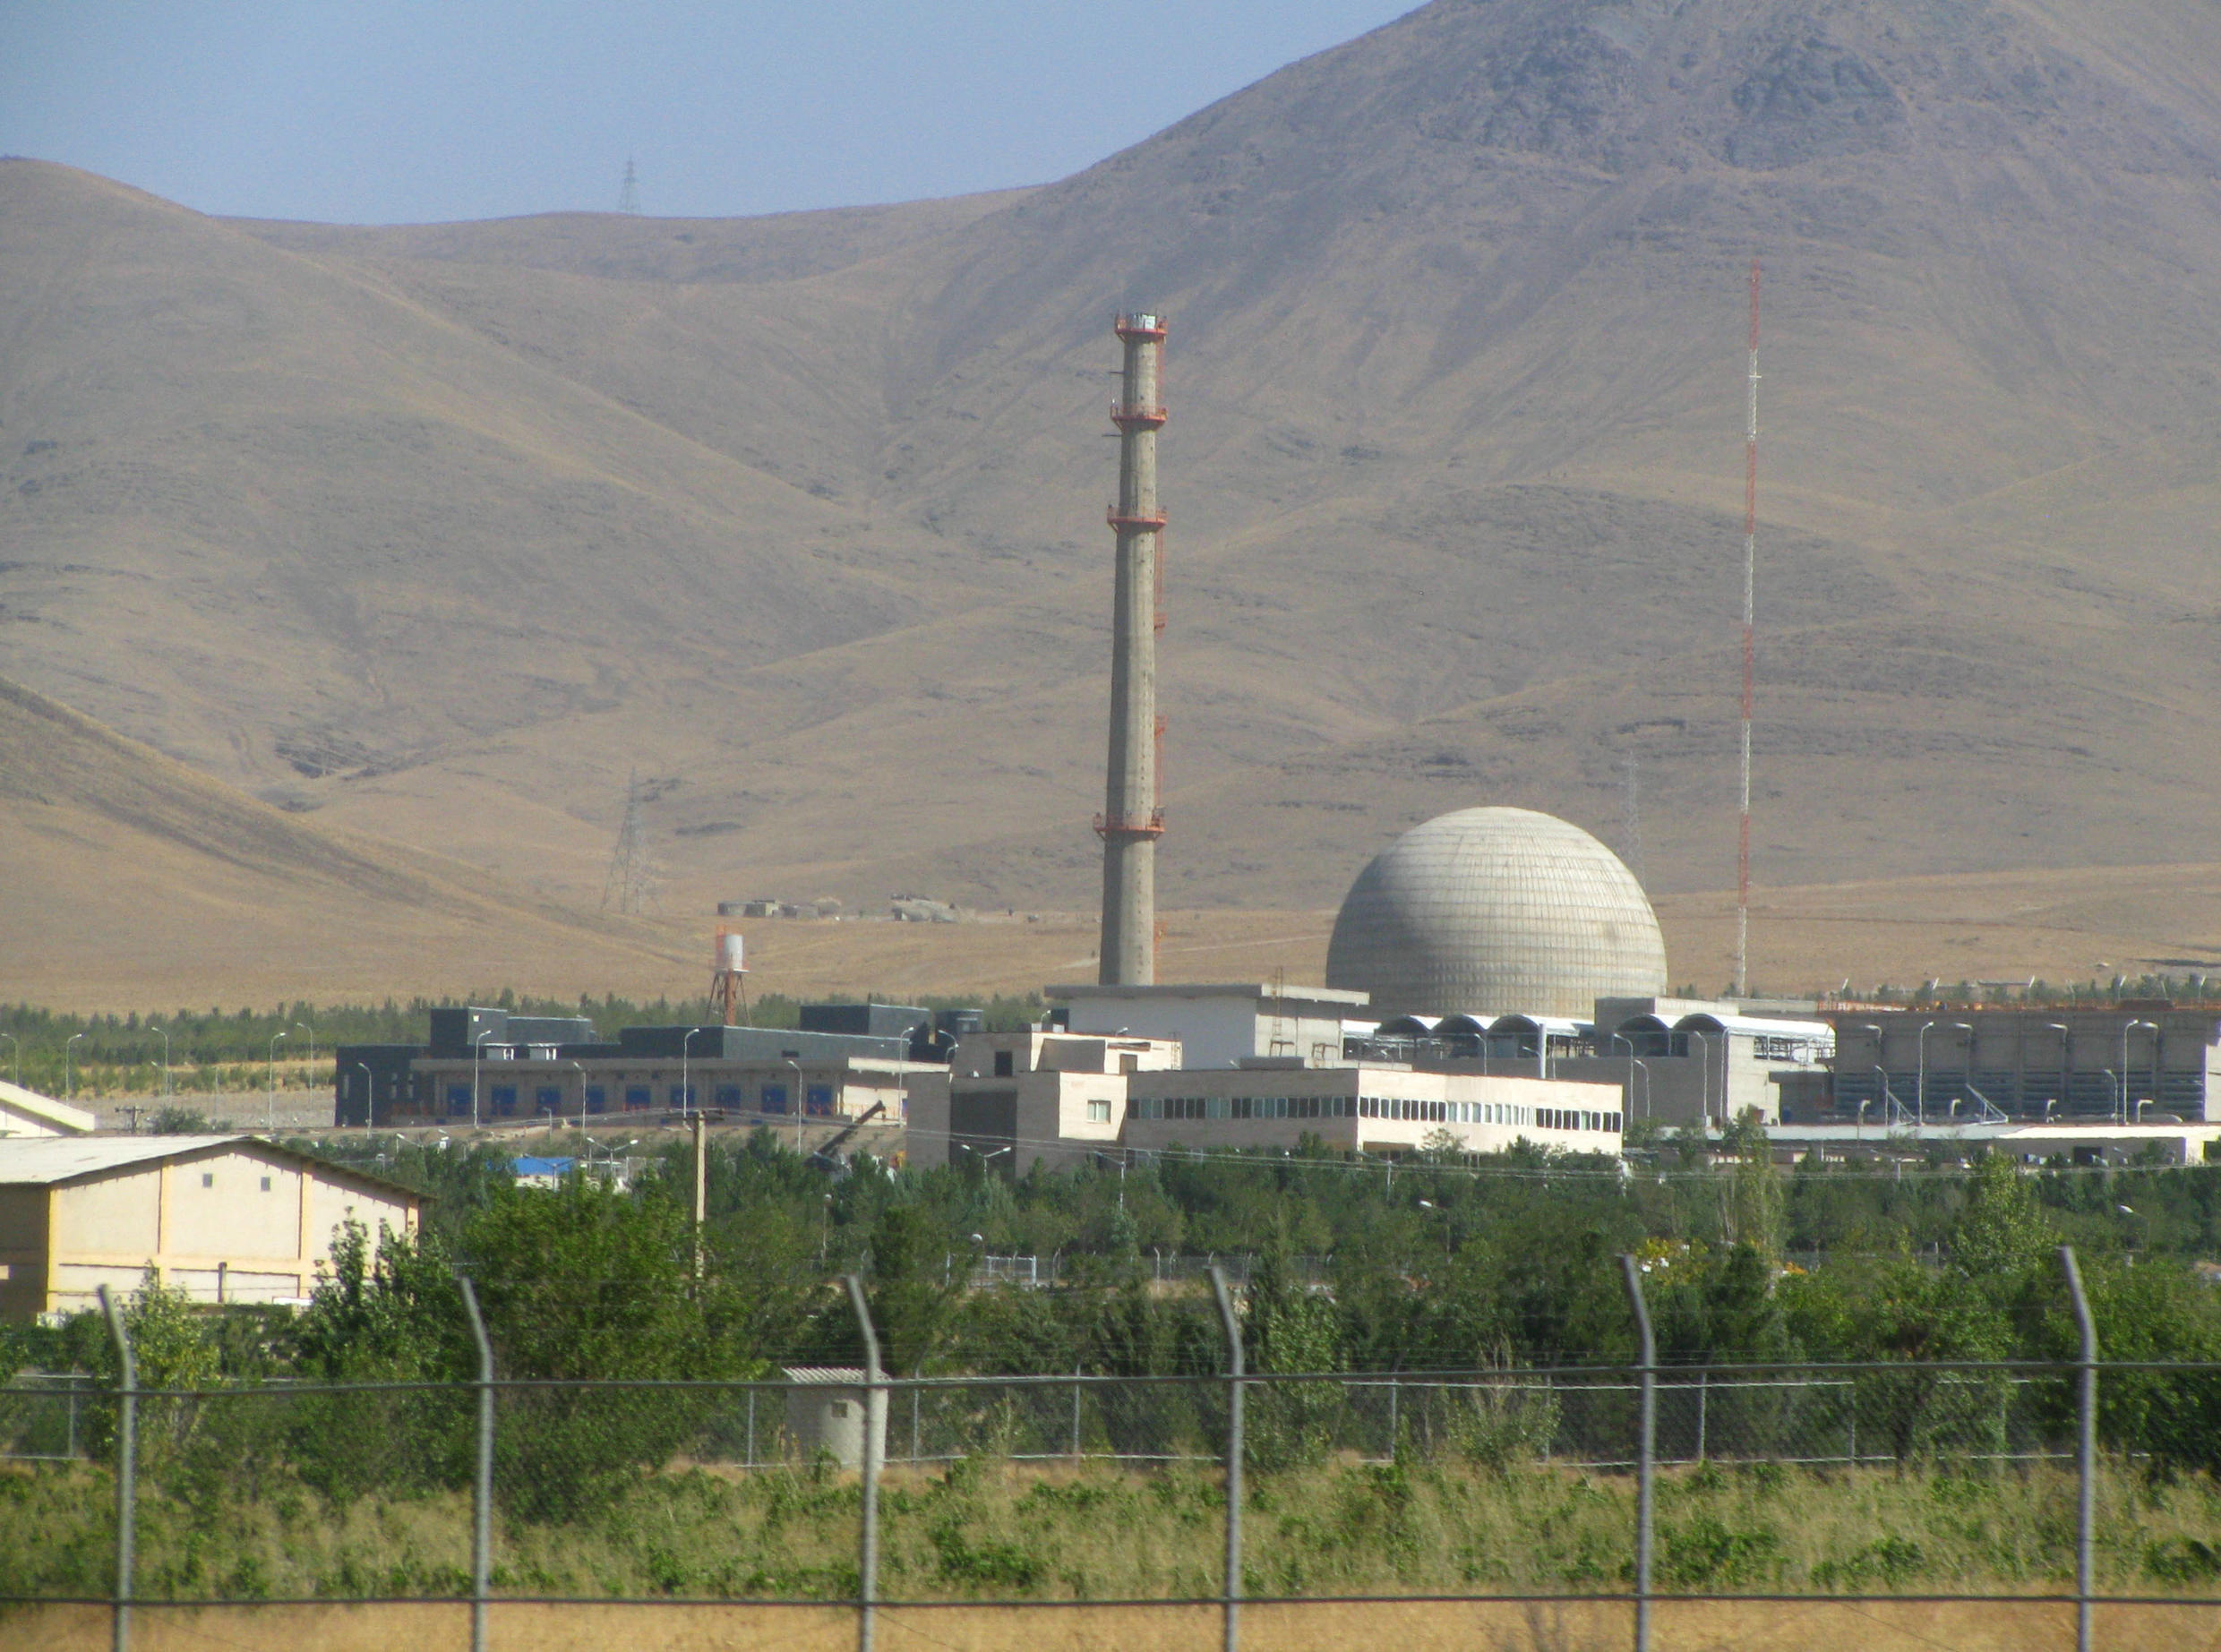 Arak nuclear power plant. The US and Israel suspect that Iran is close to producing a nuclear bomb, but Iran maintains that its nuclear program is only for peaceful use.